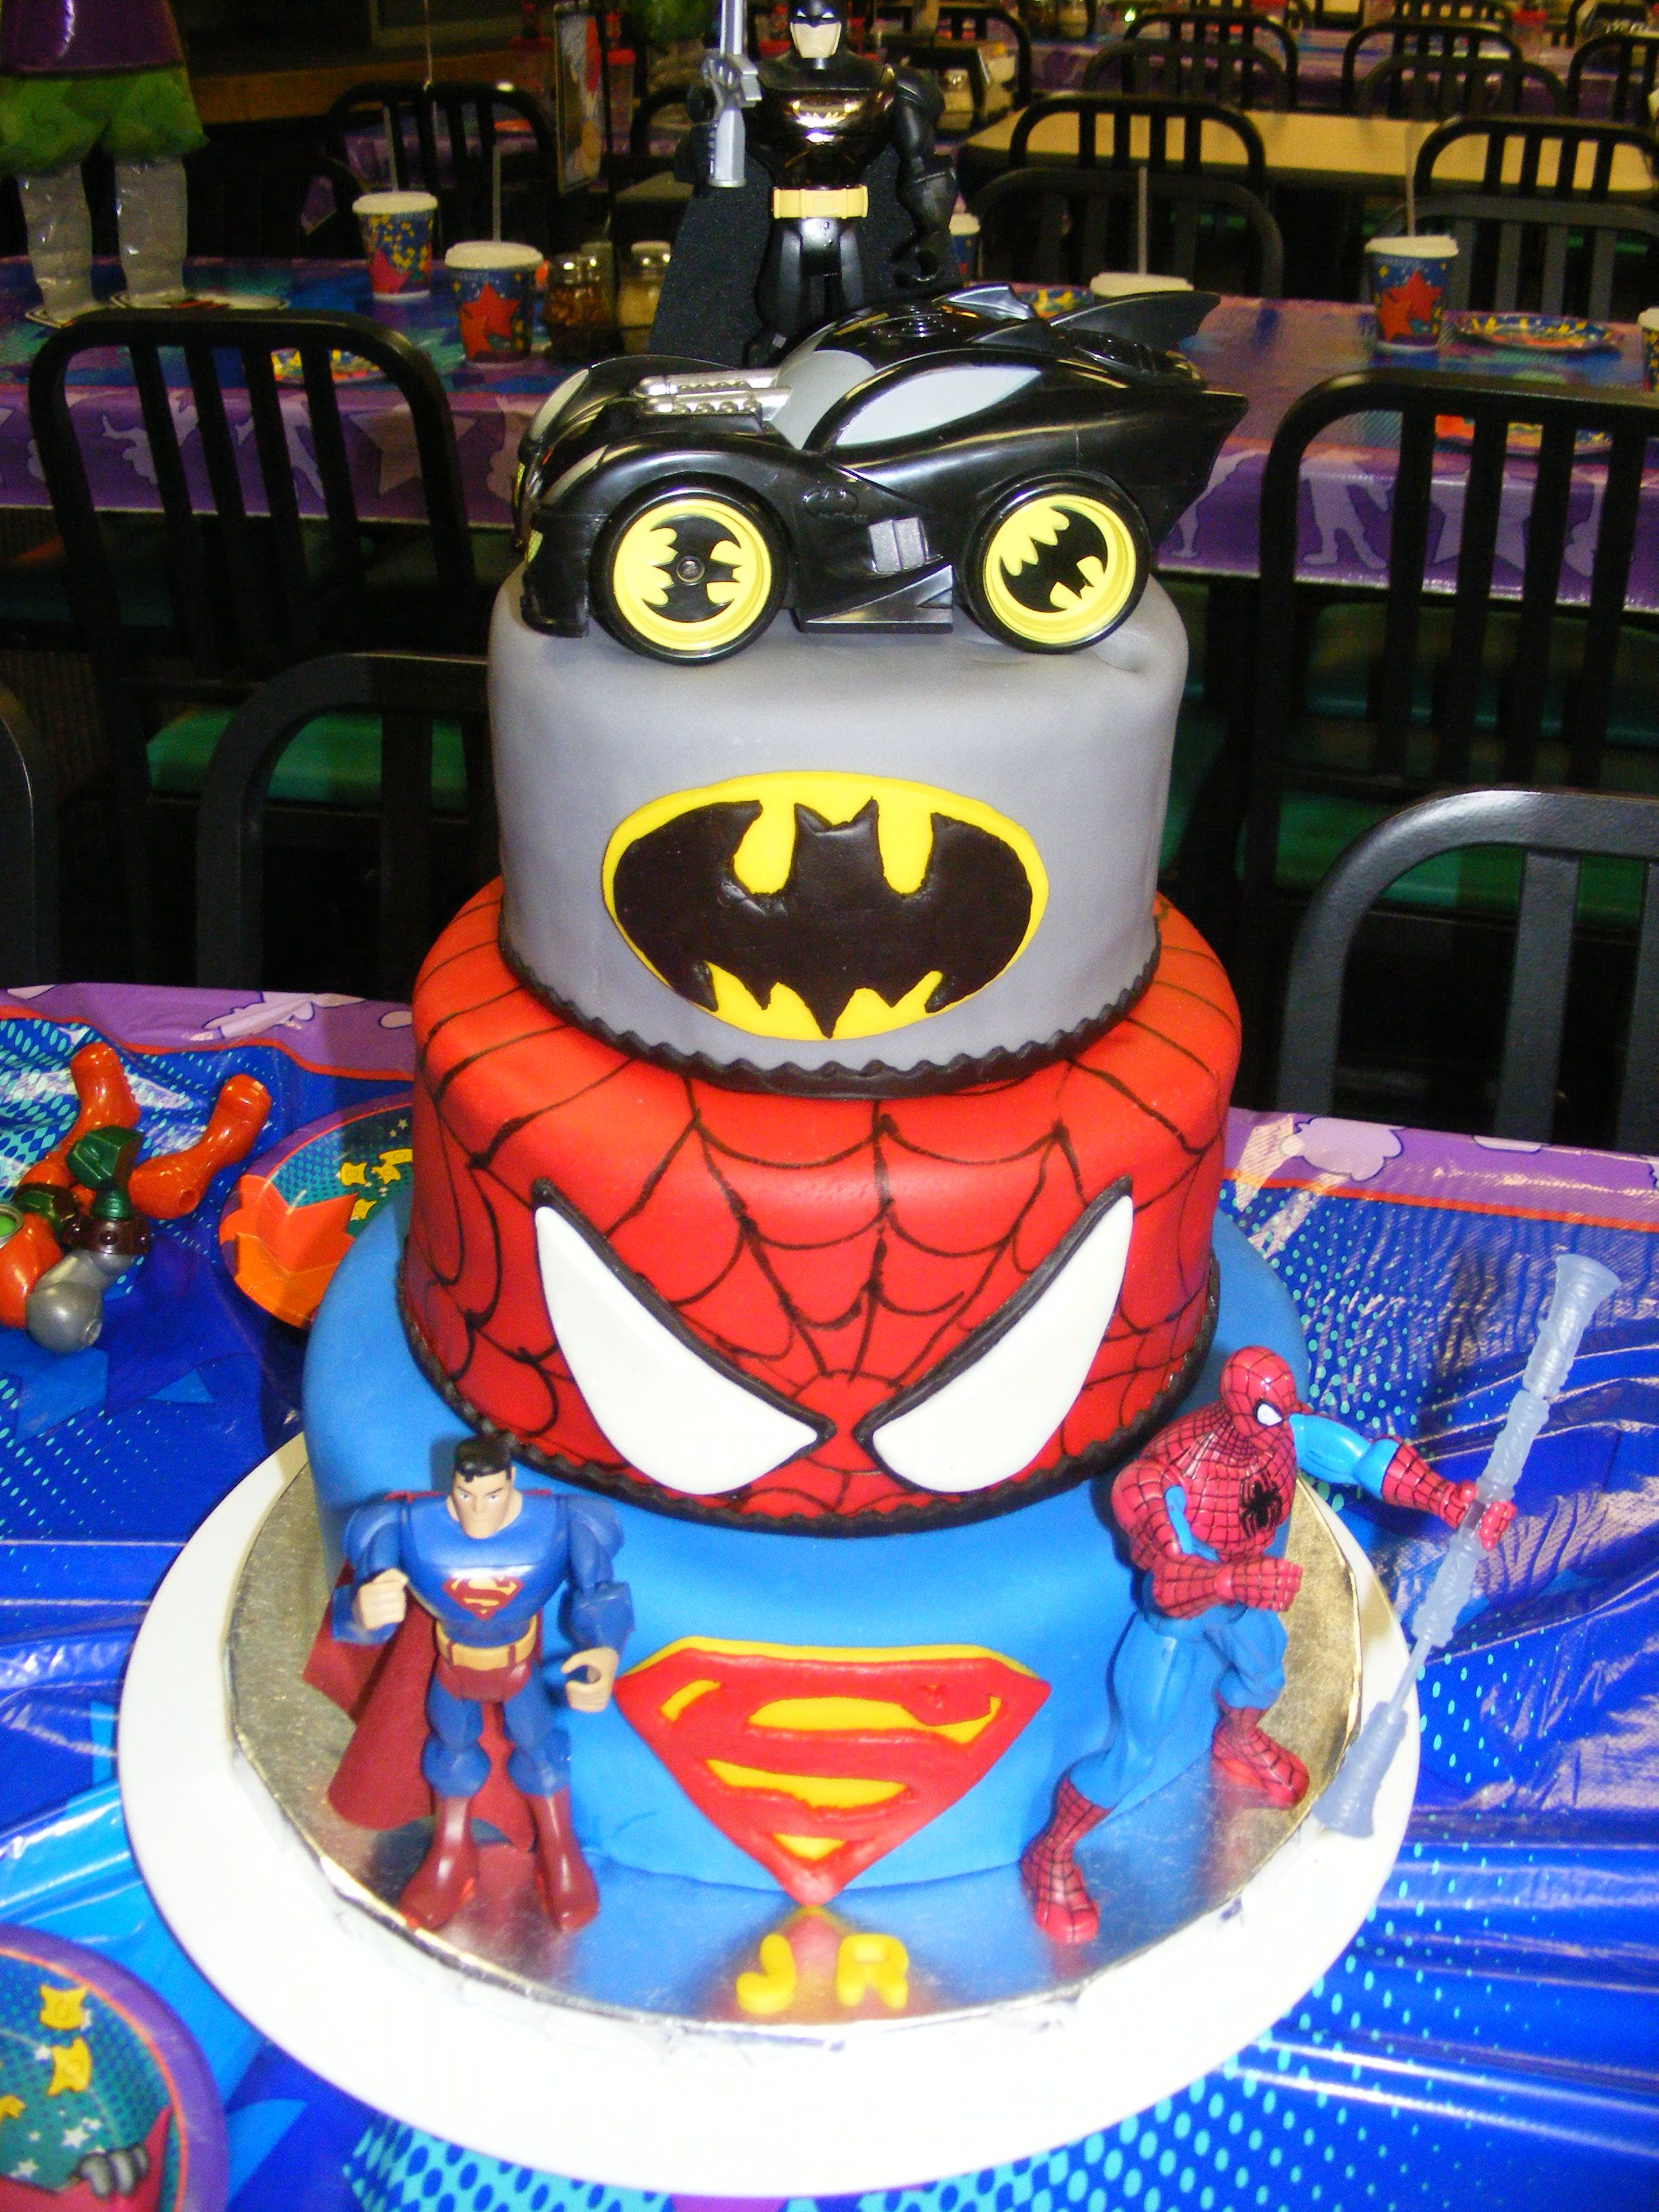 JRs Super Hero birthday cake Birthday cakes for the boys